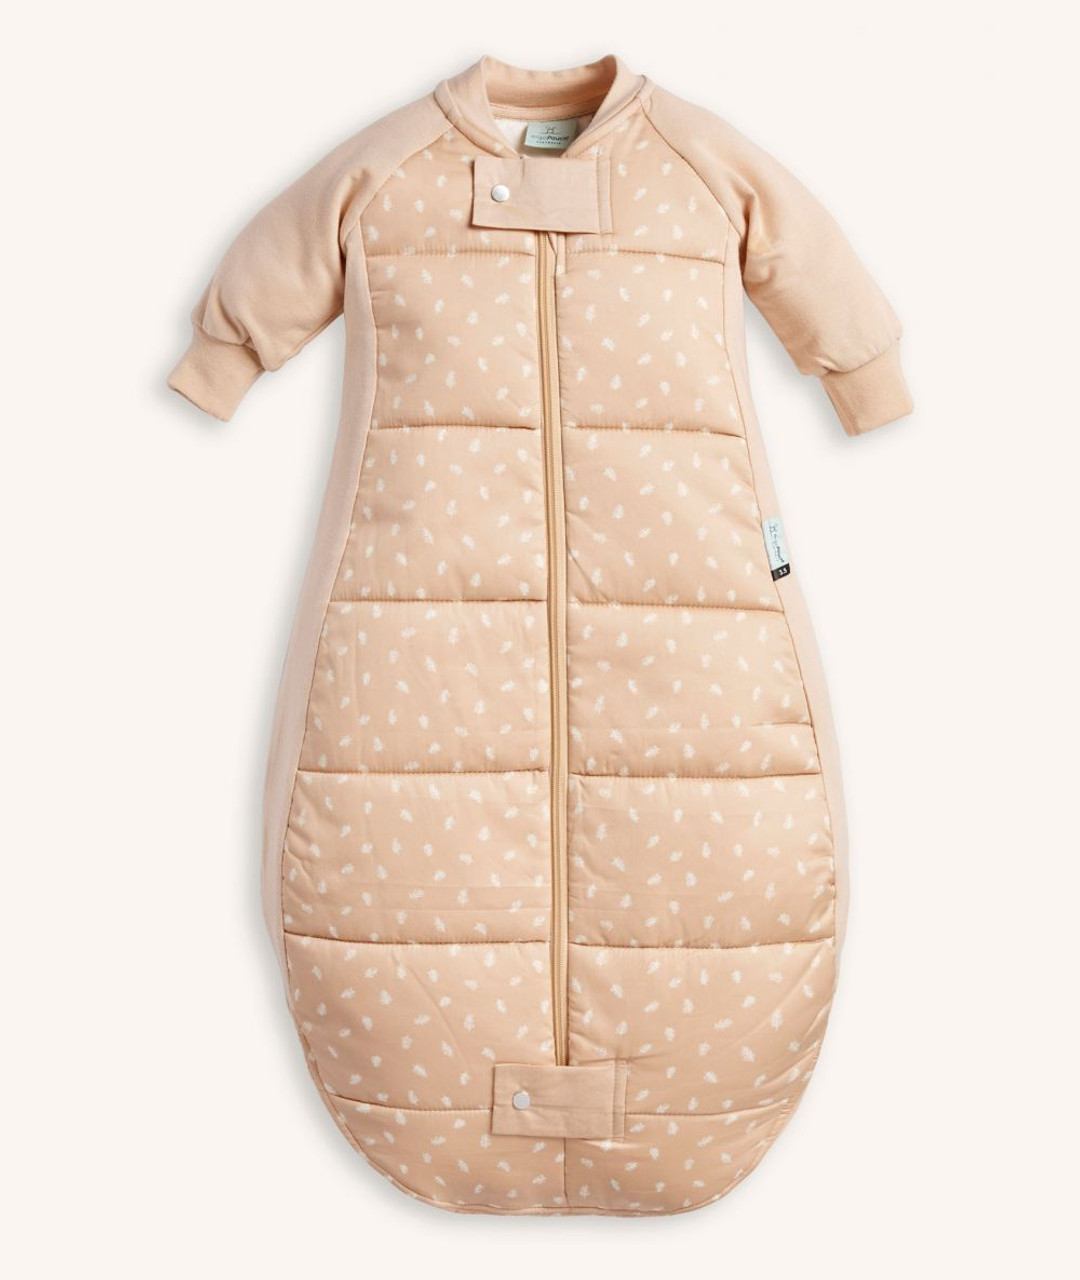 Ergopouch Sheeting Sleeping Bag 3.5 Tog 8-24 Months GOLDEN at Baby Barn Discounts